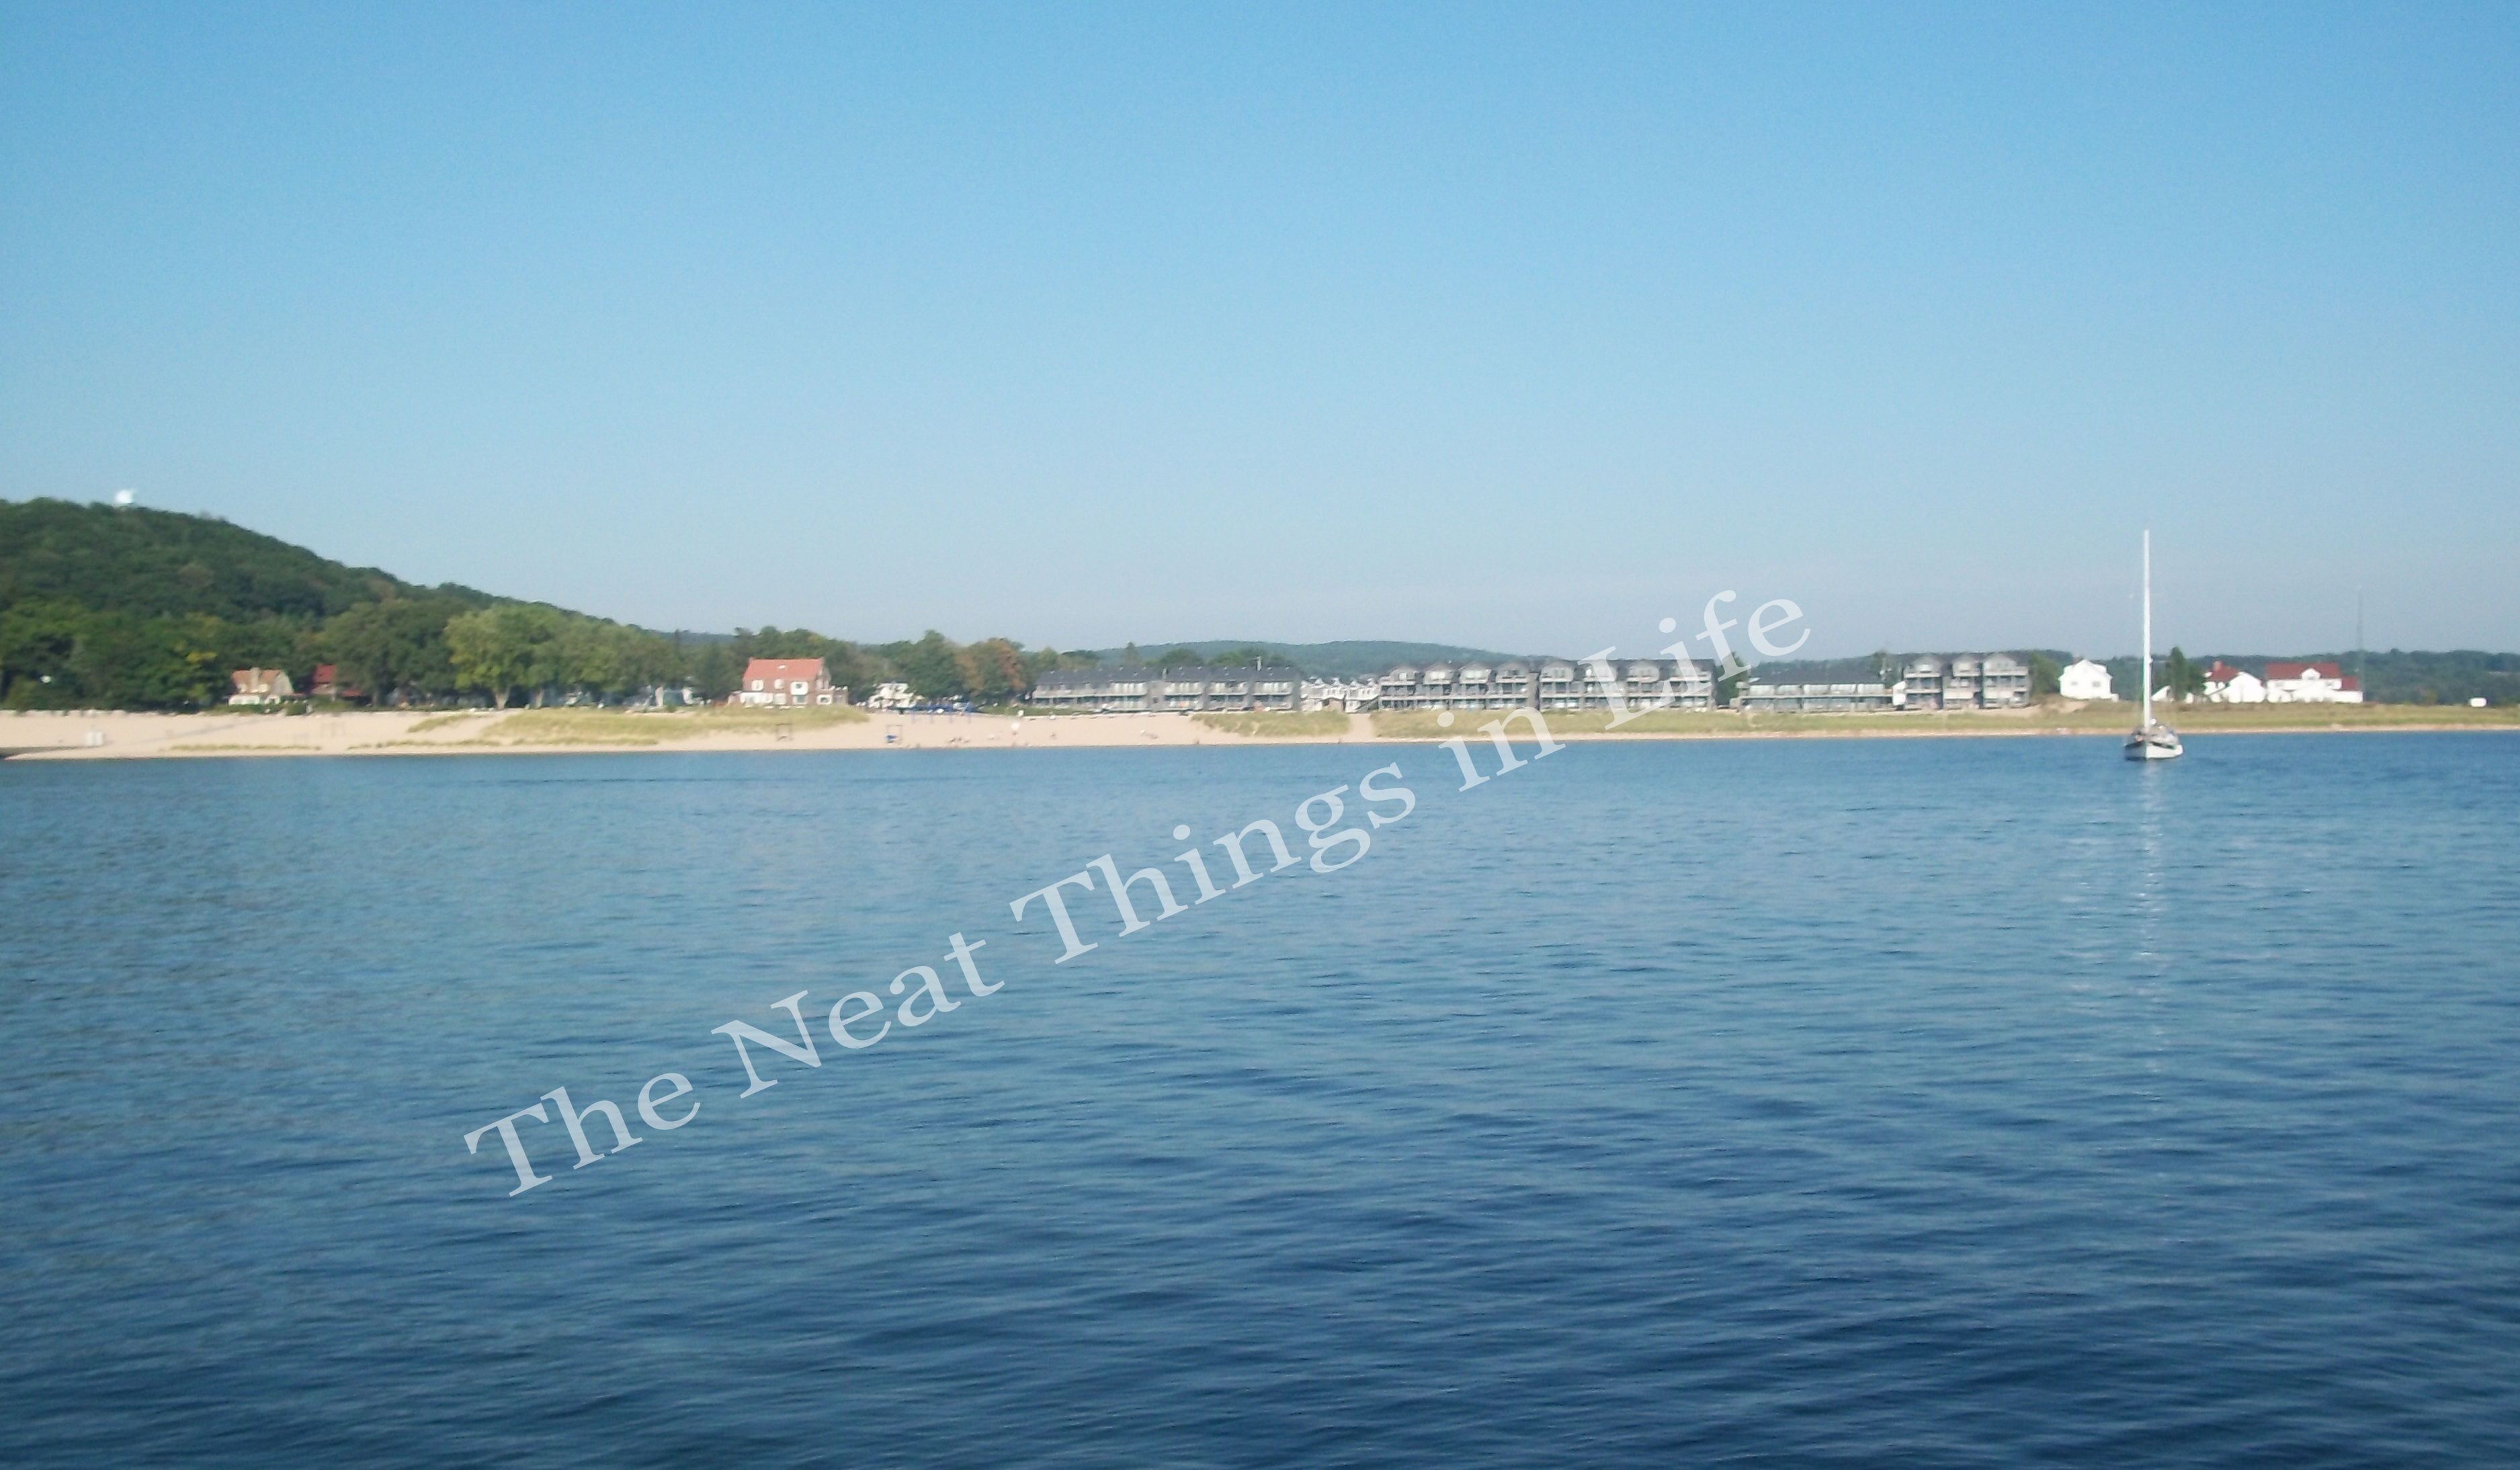 the view from the pier